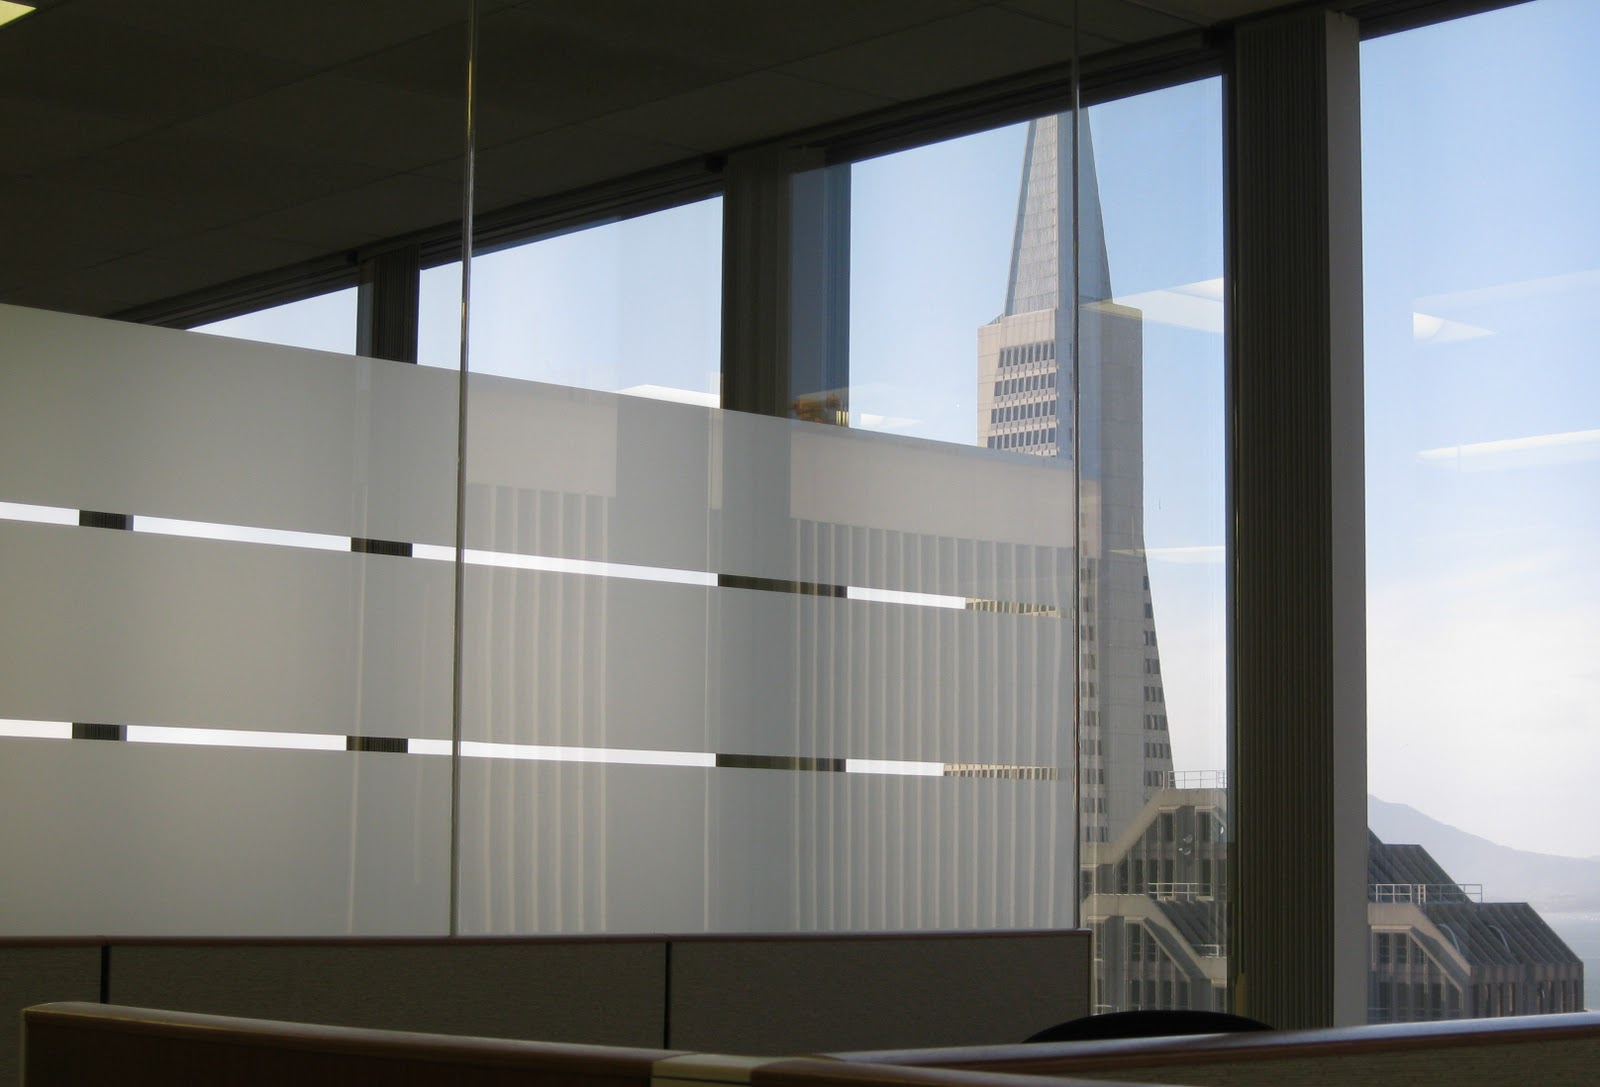 This Office With Frosted Window Film Has A View Of The Transamerica Building In Sf